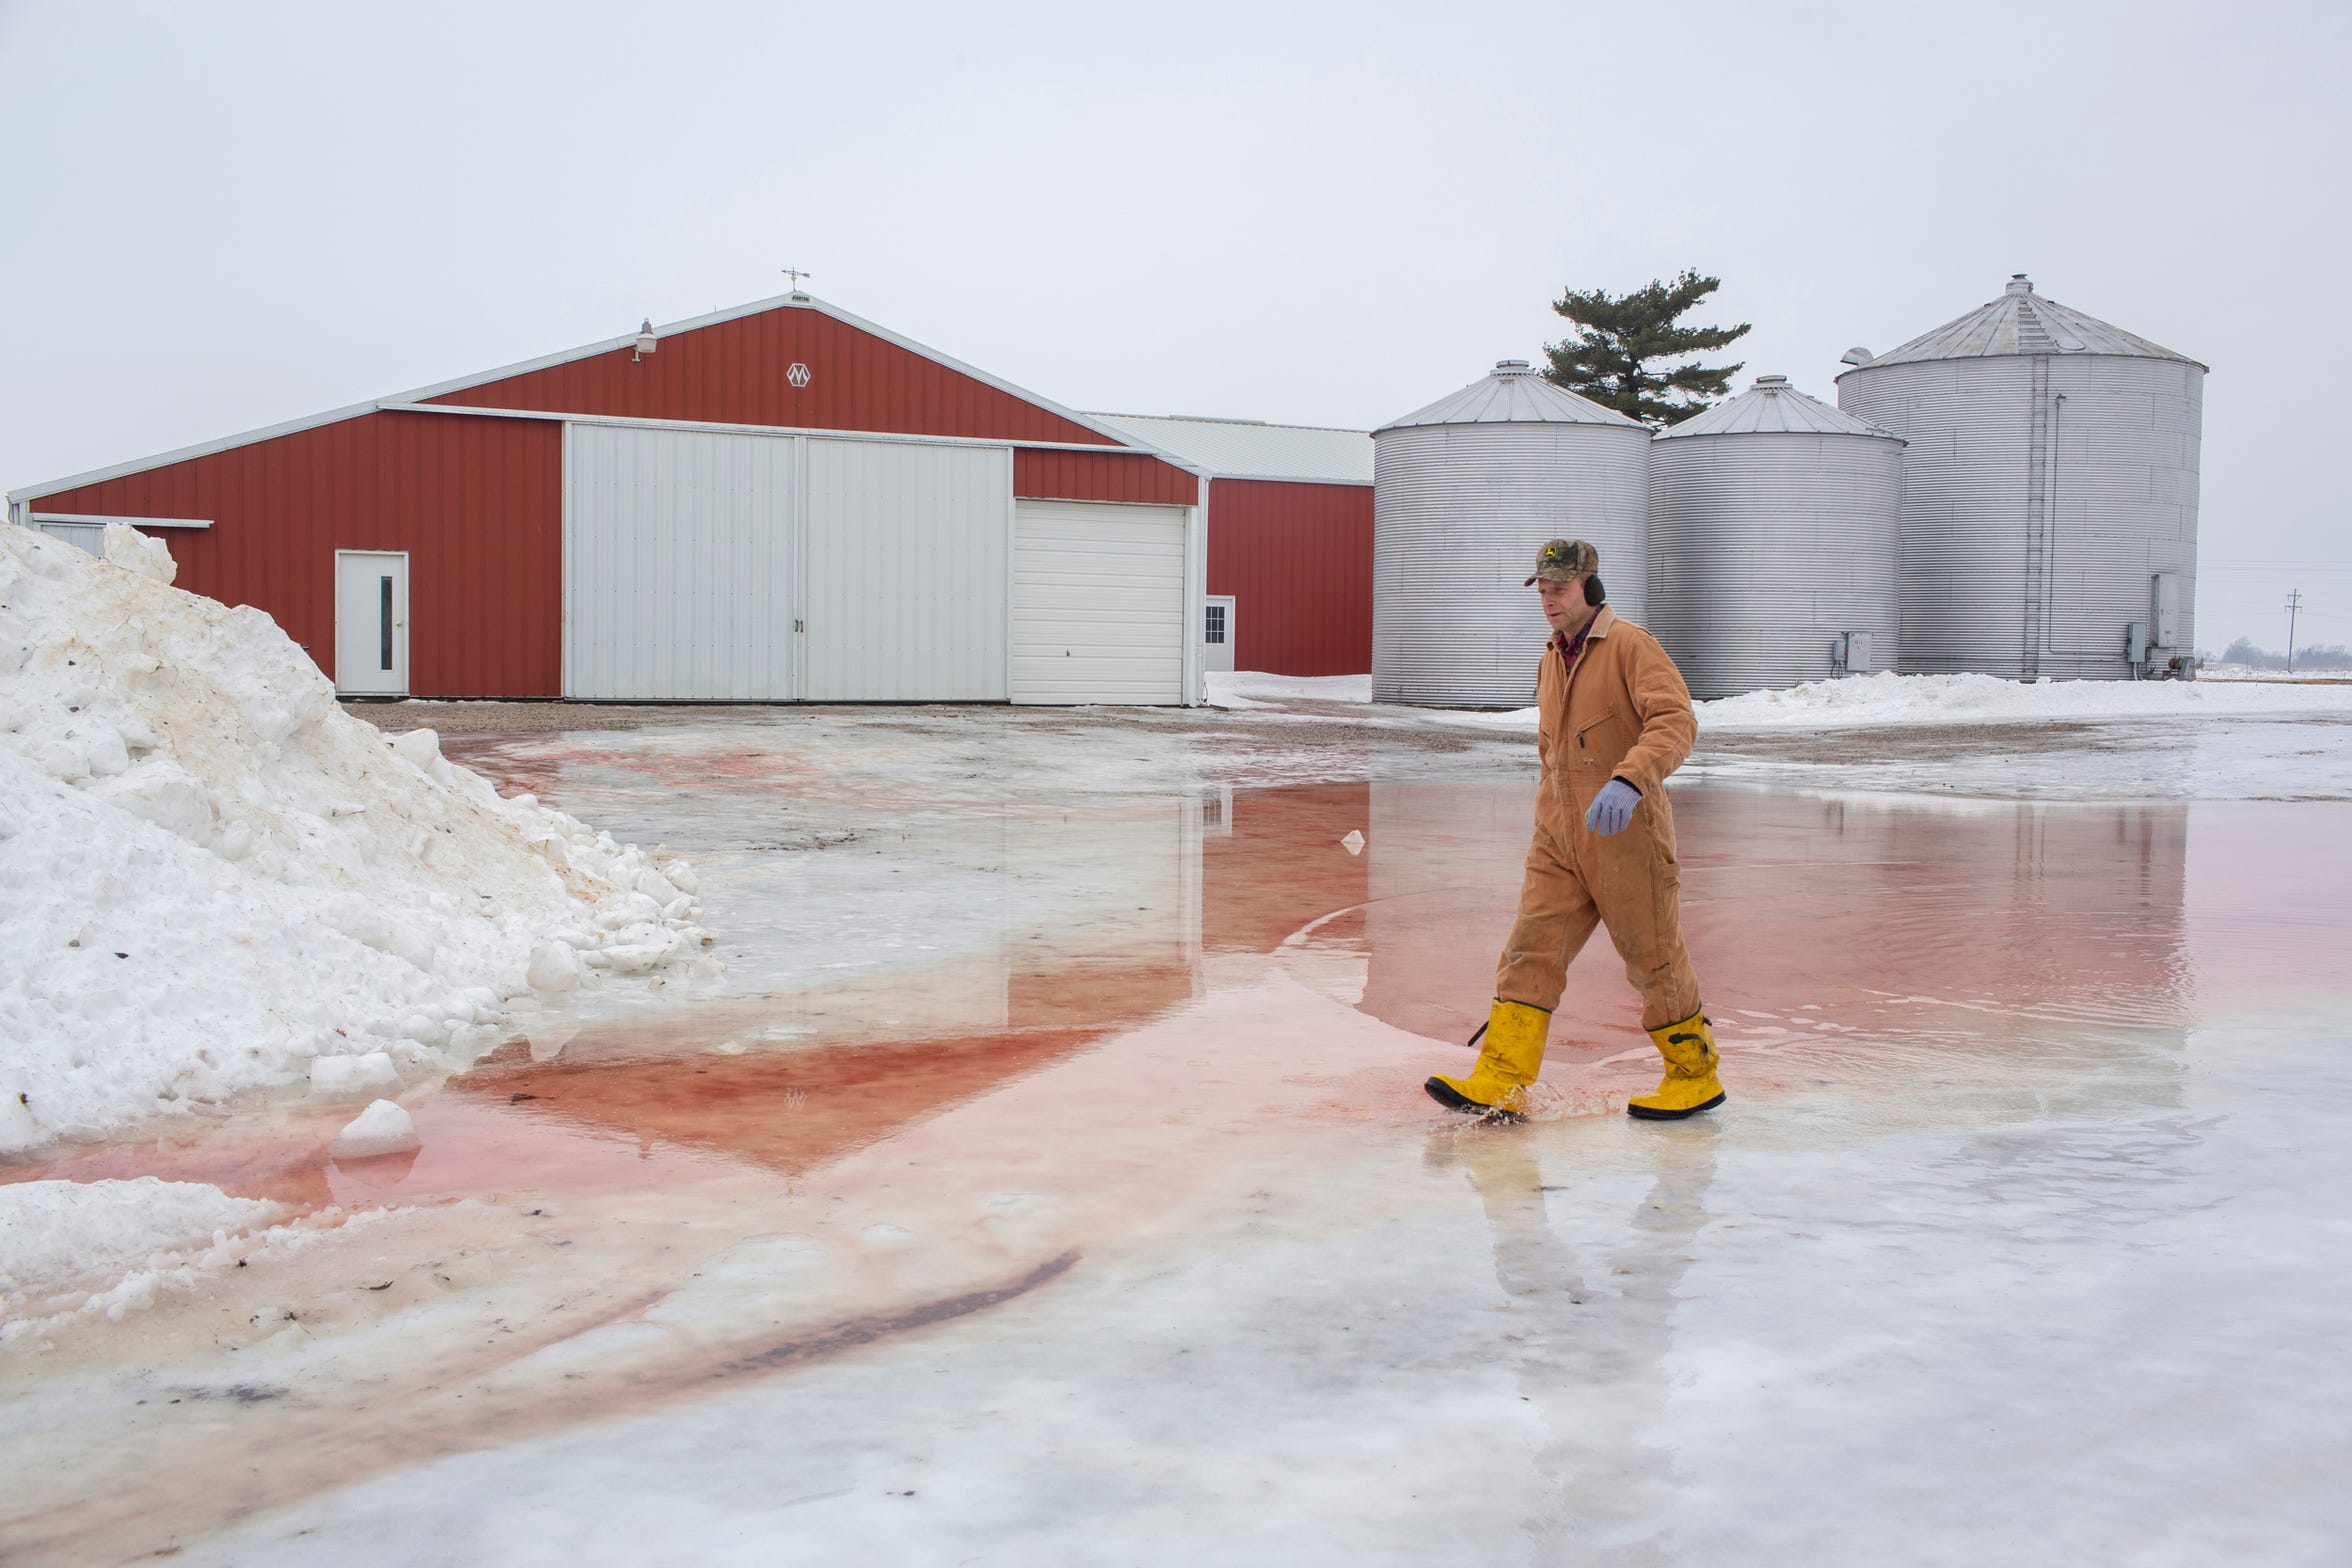 Randy DeBaillie walks over a sheet of ice at his farm in Orion, Illinois on February 3, 2019.He recently installed a small solar system to power his farm.